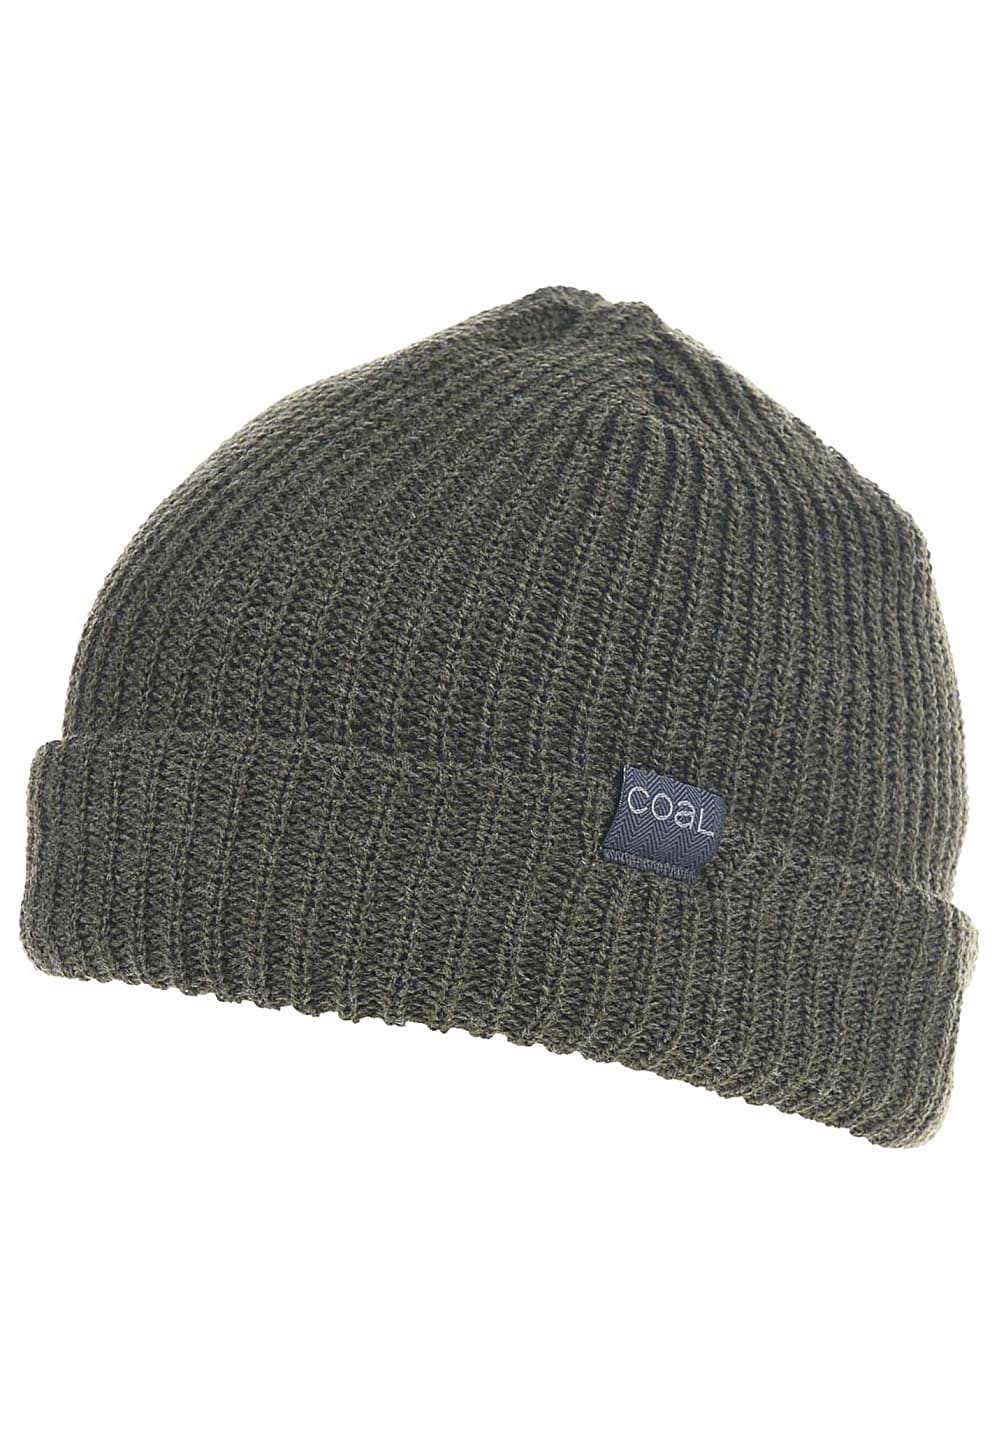 f1003bdb1fe Coal The Stanley - Beanie - Green - Planet Sports